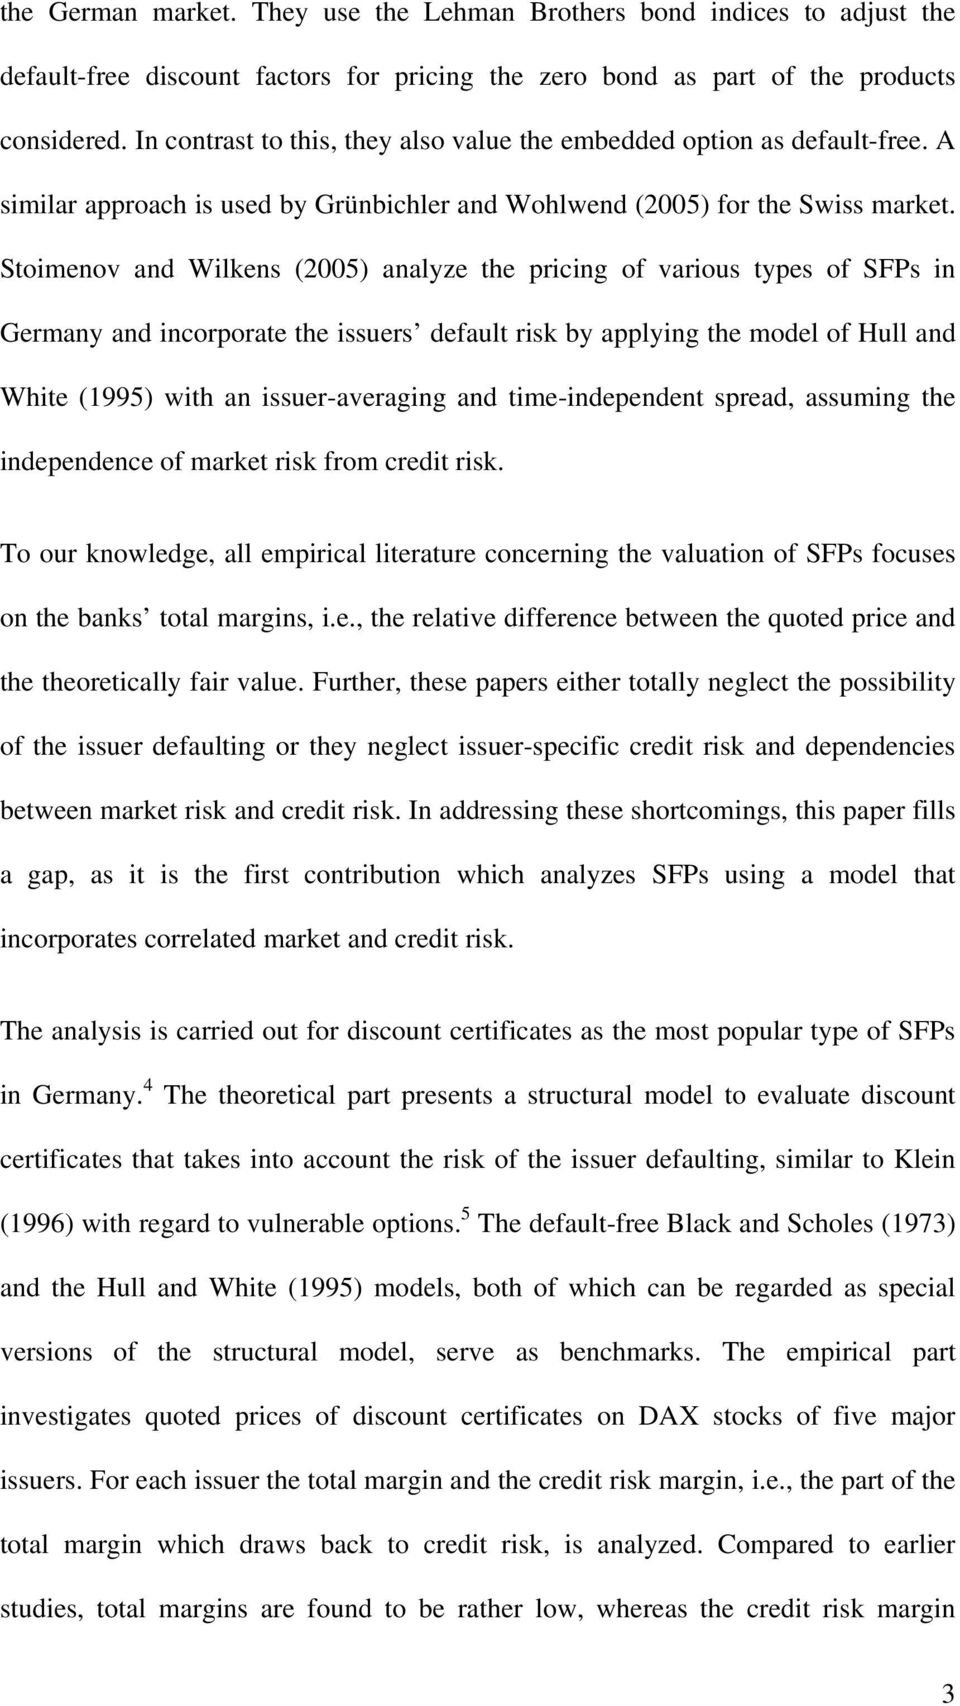 Stoimenov and Wilkens (25) analyze the pricing of various types of SFPs in Germany and incorporate the issuers default risk by applying the model of Hull and White (1995) with an issuer-averaging and